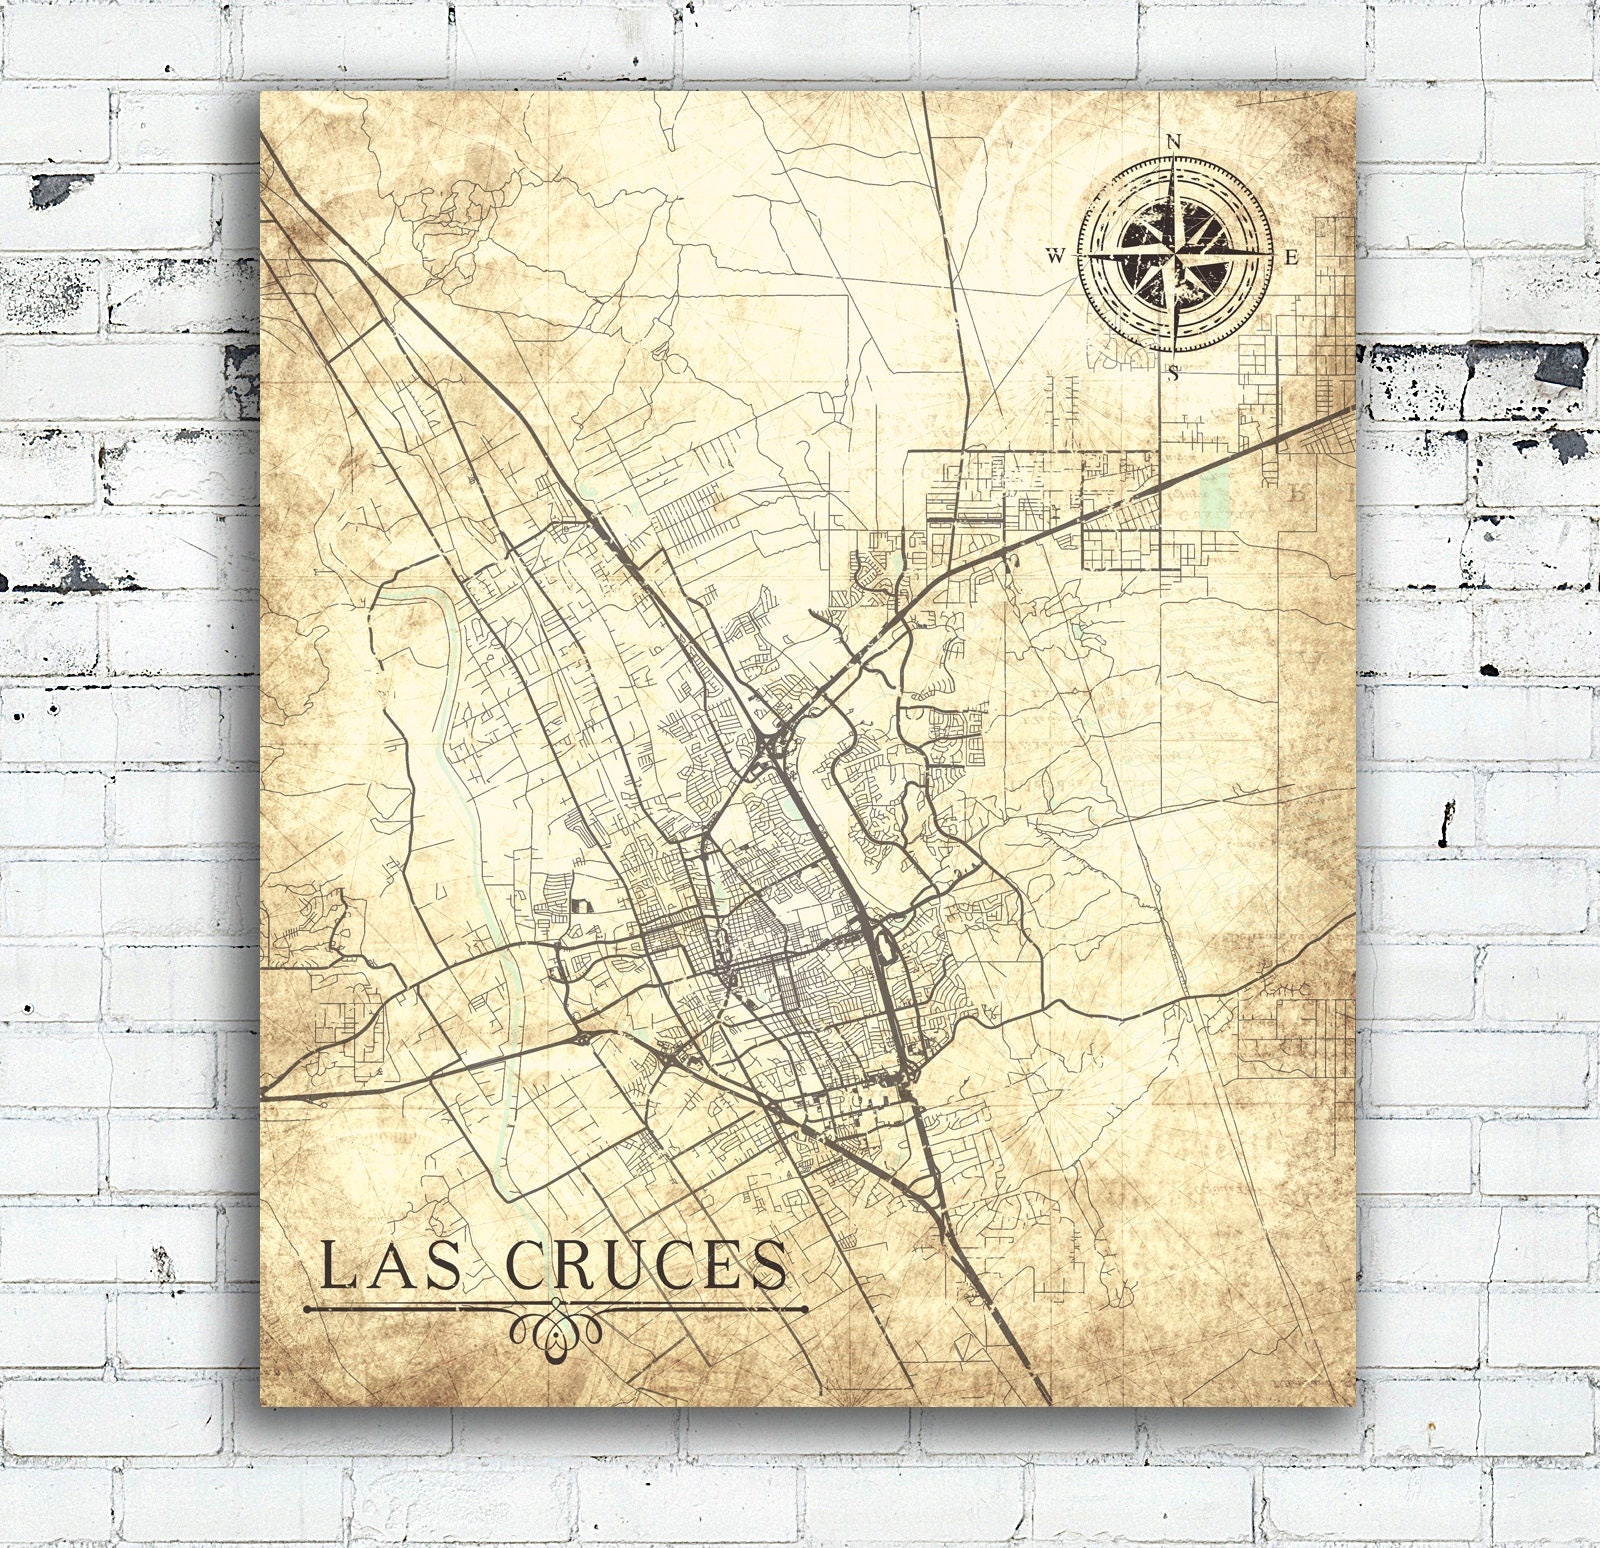 LAS CRUCES NM Canvas Print Nm New Mexico City Vintage map Wall Art